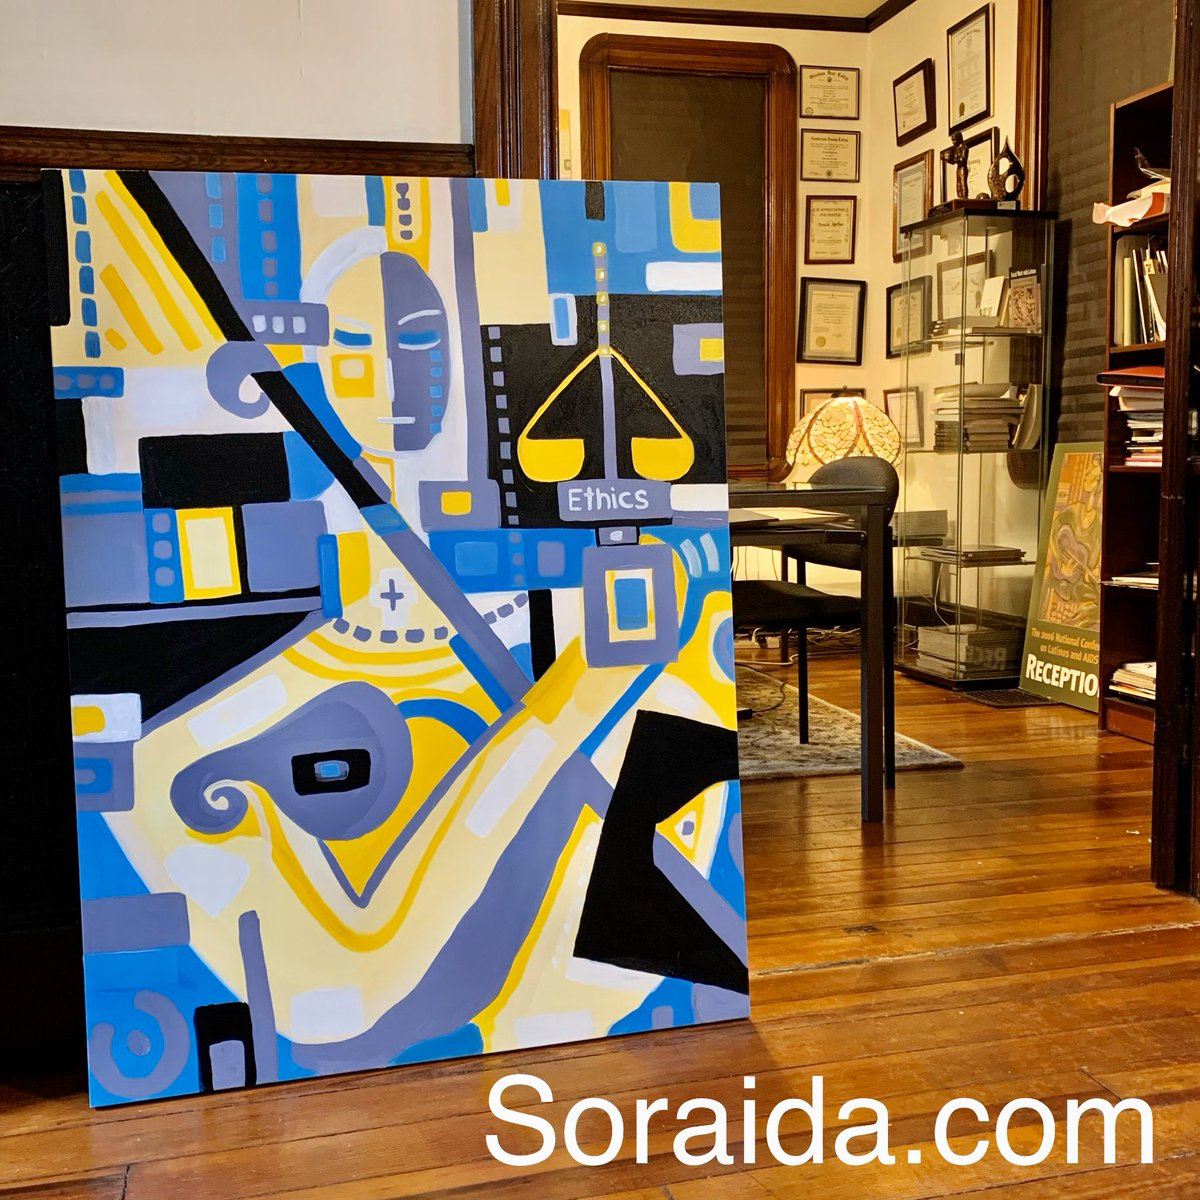 Soraida Martinez Art Verdadism Twitter Paintings with social commentaries from her creator of verdadism, puerto rican artist, latina feminist painter, soraida martinez is a fine artist. soraida martinez art verdadism twitter